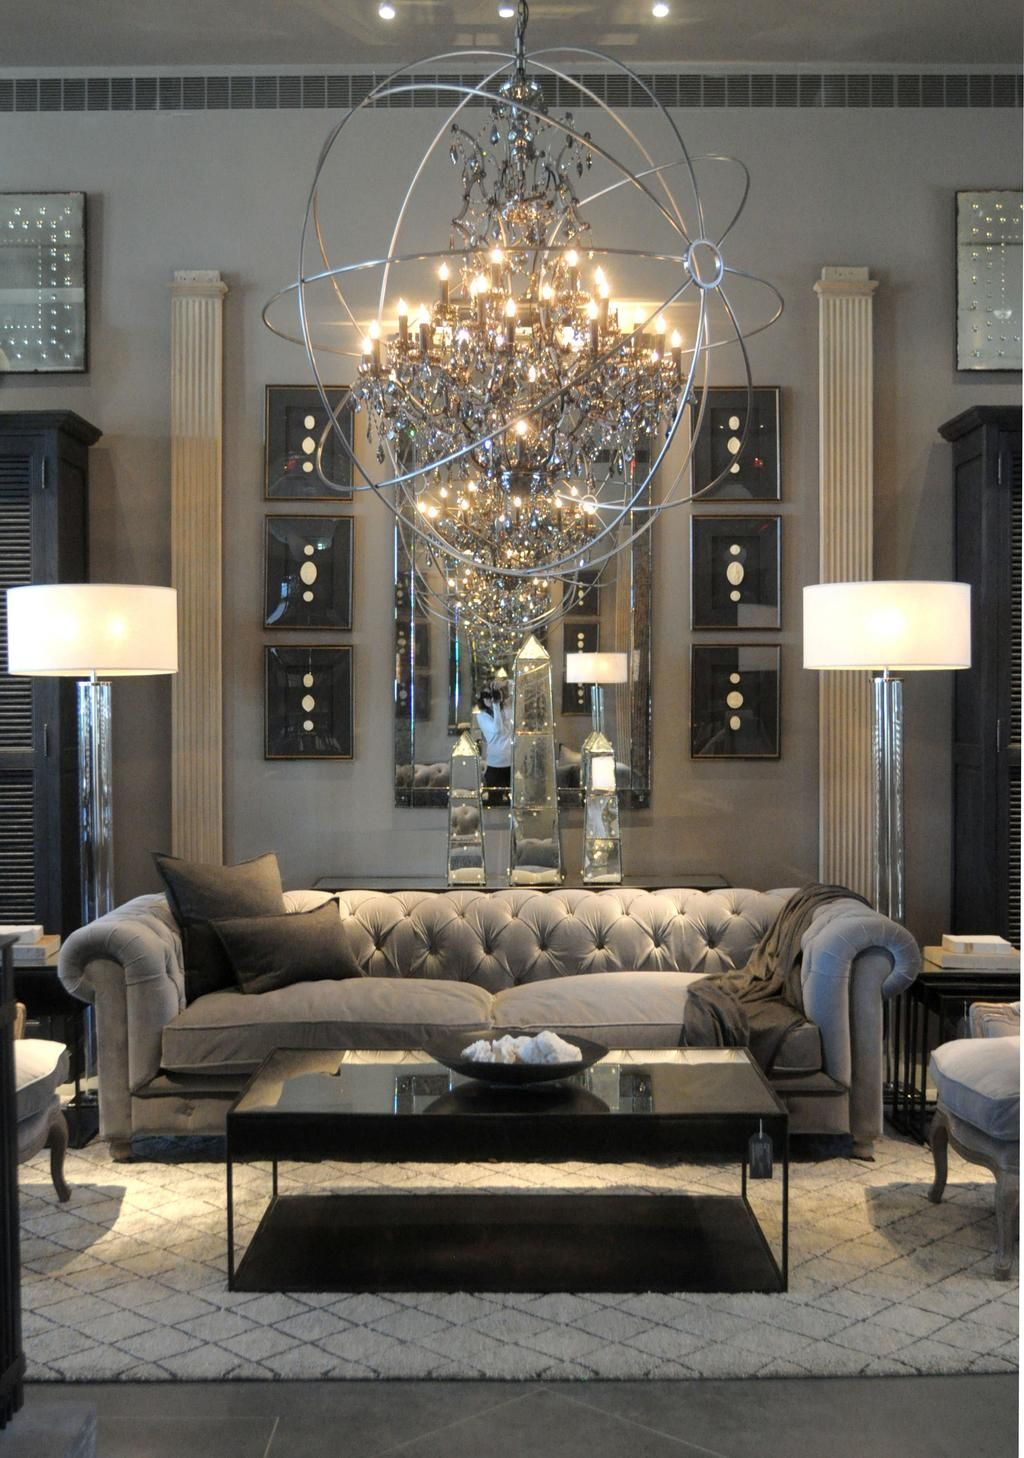 Drawing Room Design: 43 Modern Glam Living Room Decorating Ideas